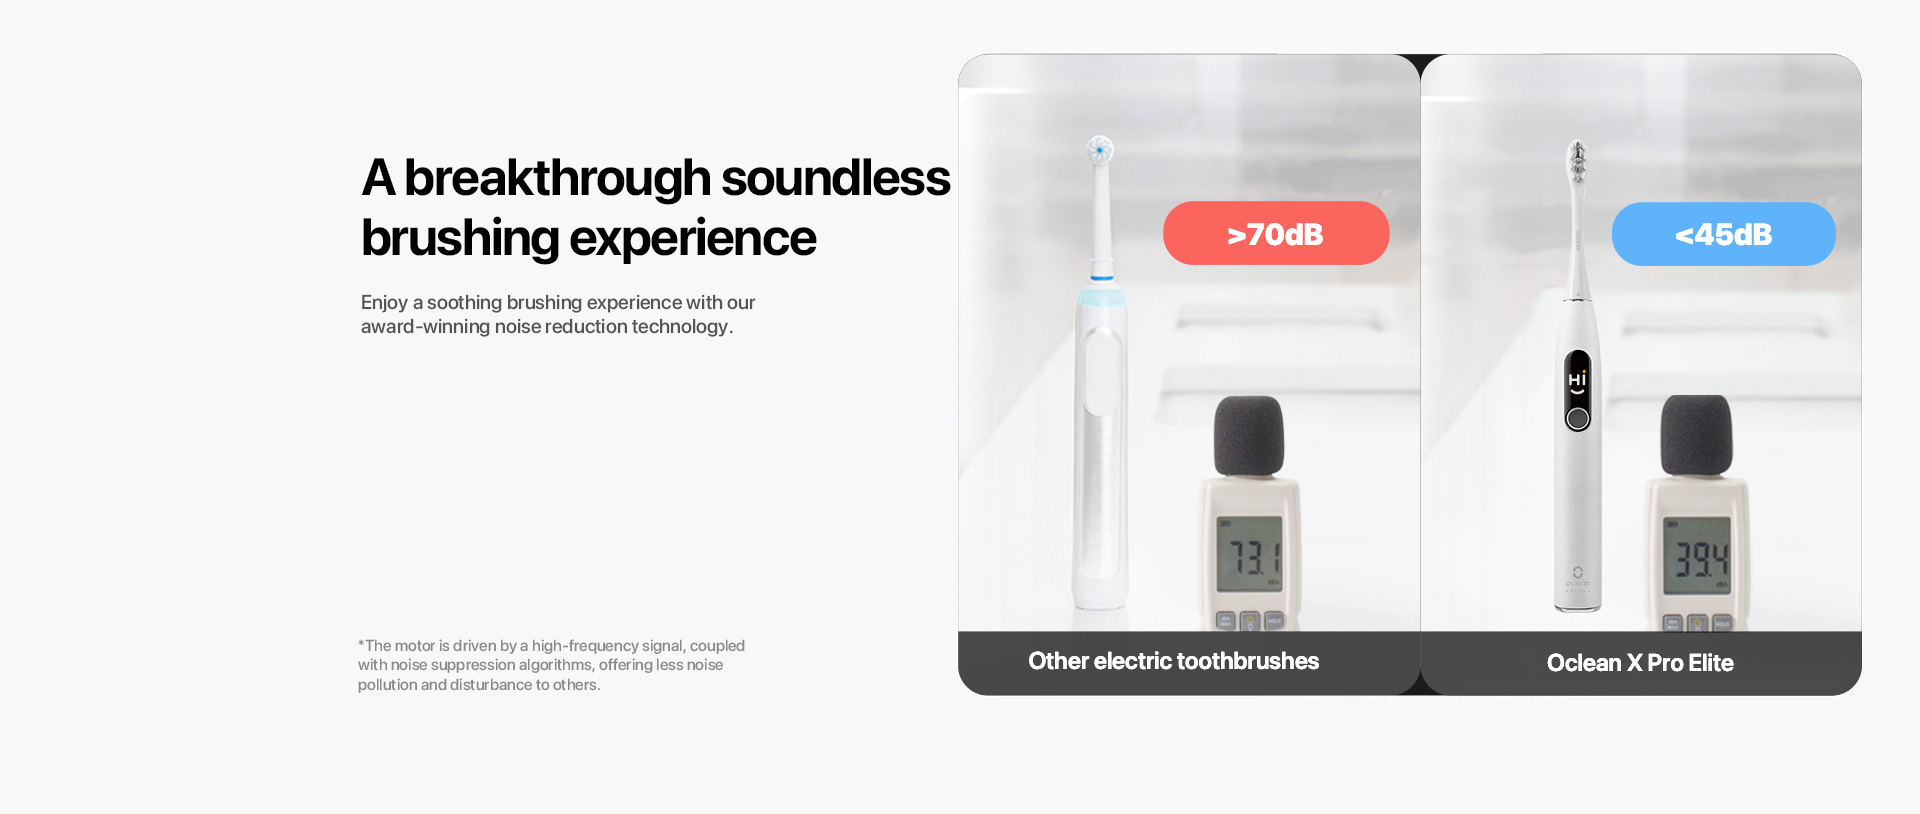 a breakthrough soundless brushing experience